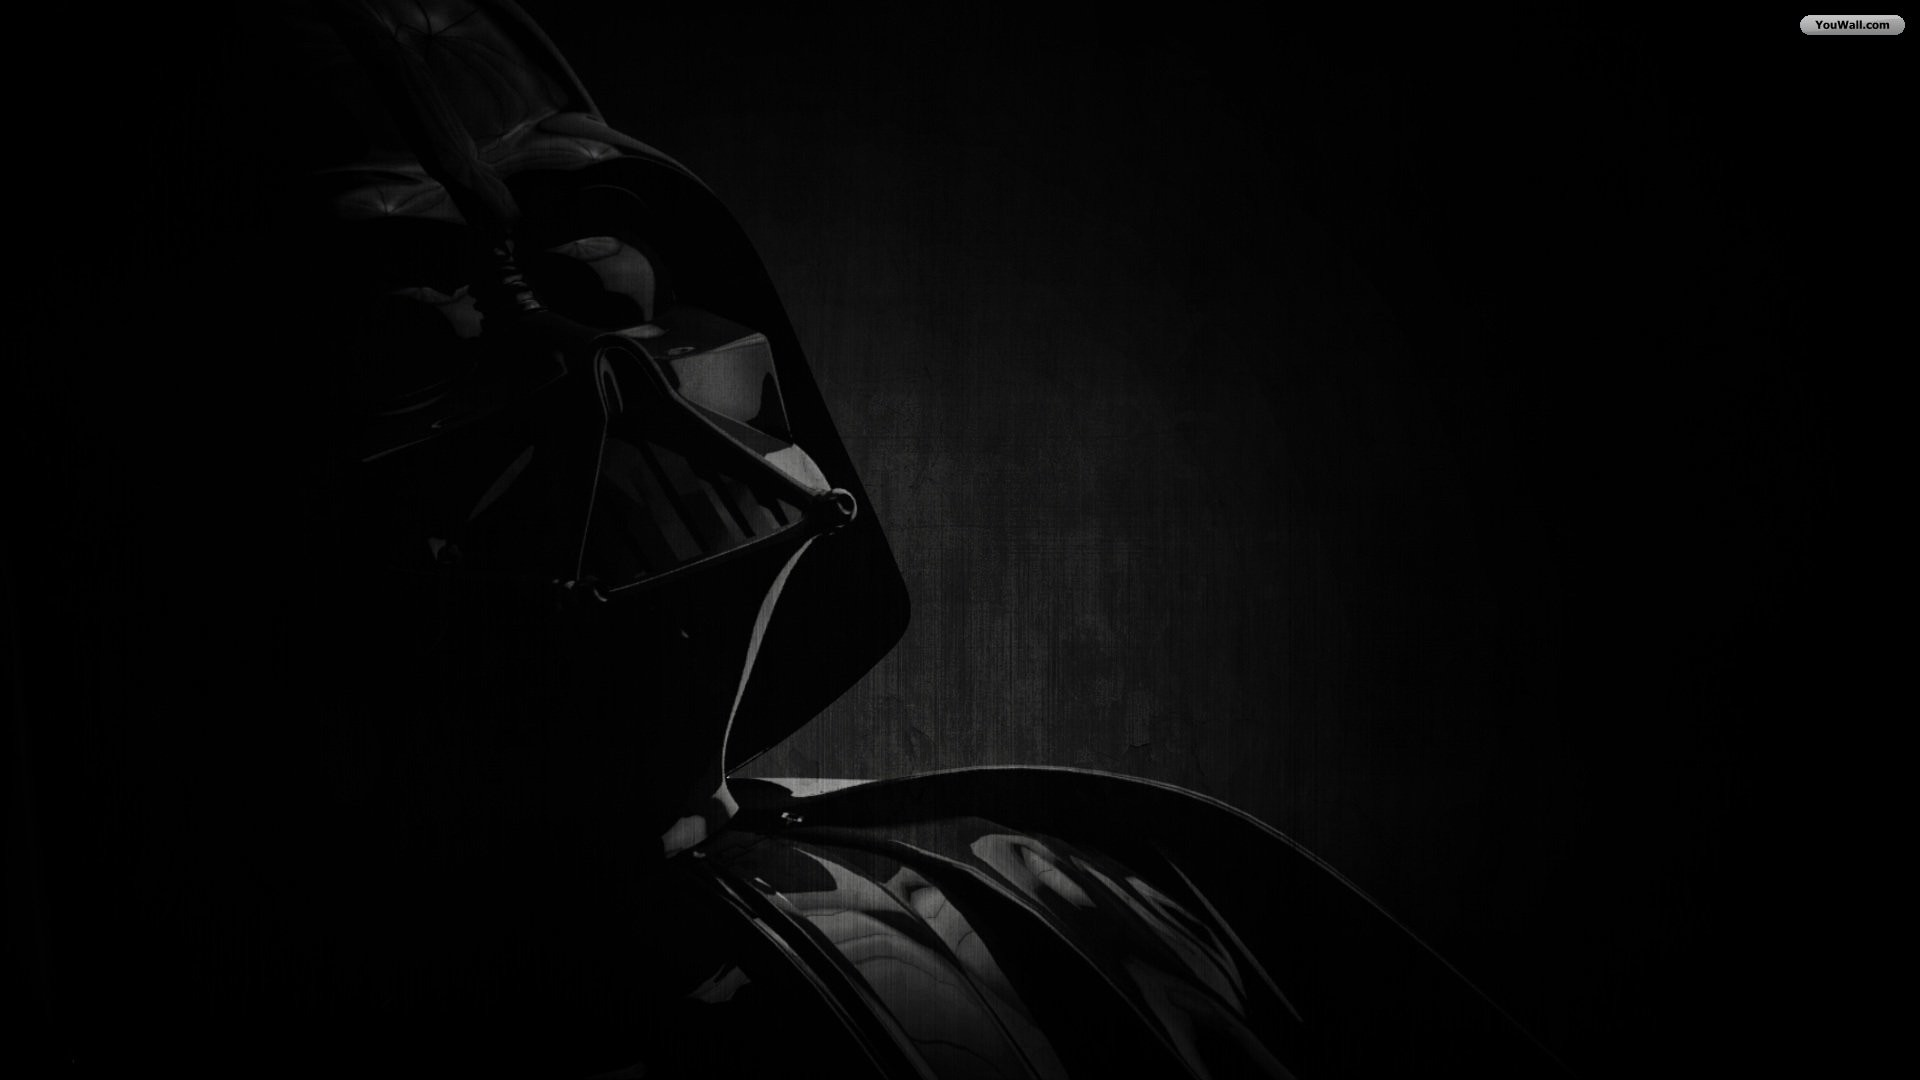 Darth Vader Wallpaper Collection For Free Download